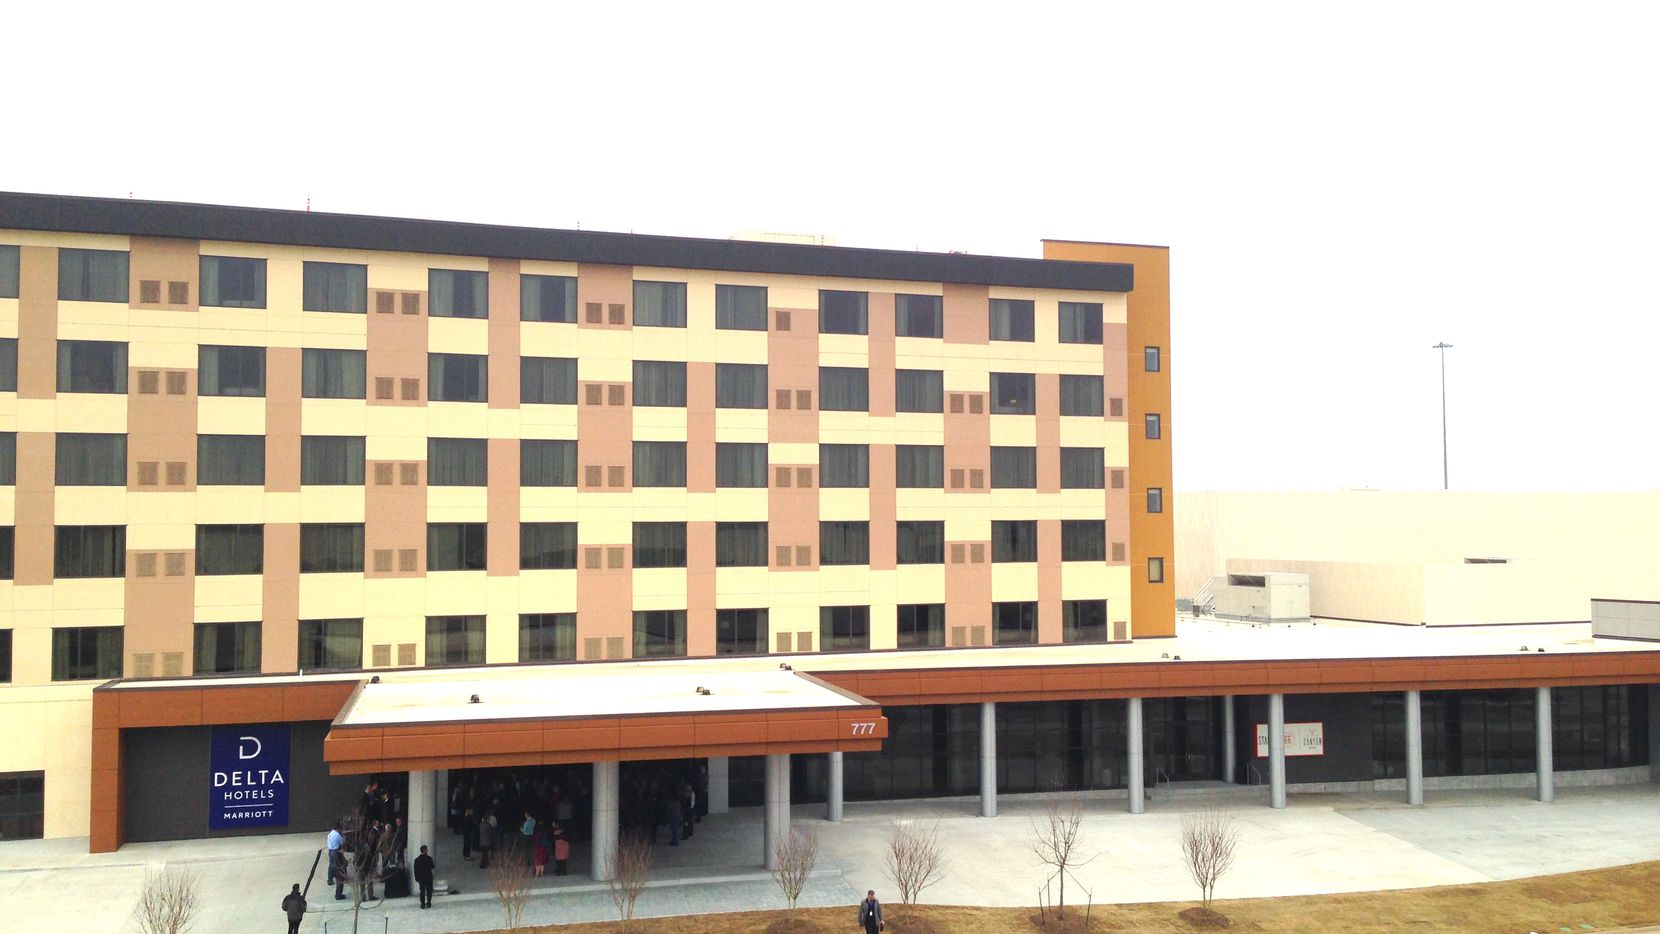 The 300-room hotel and 90,000-square-foot convention center are on U.S. Highway 75 in Allen.